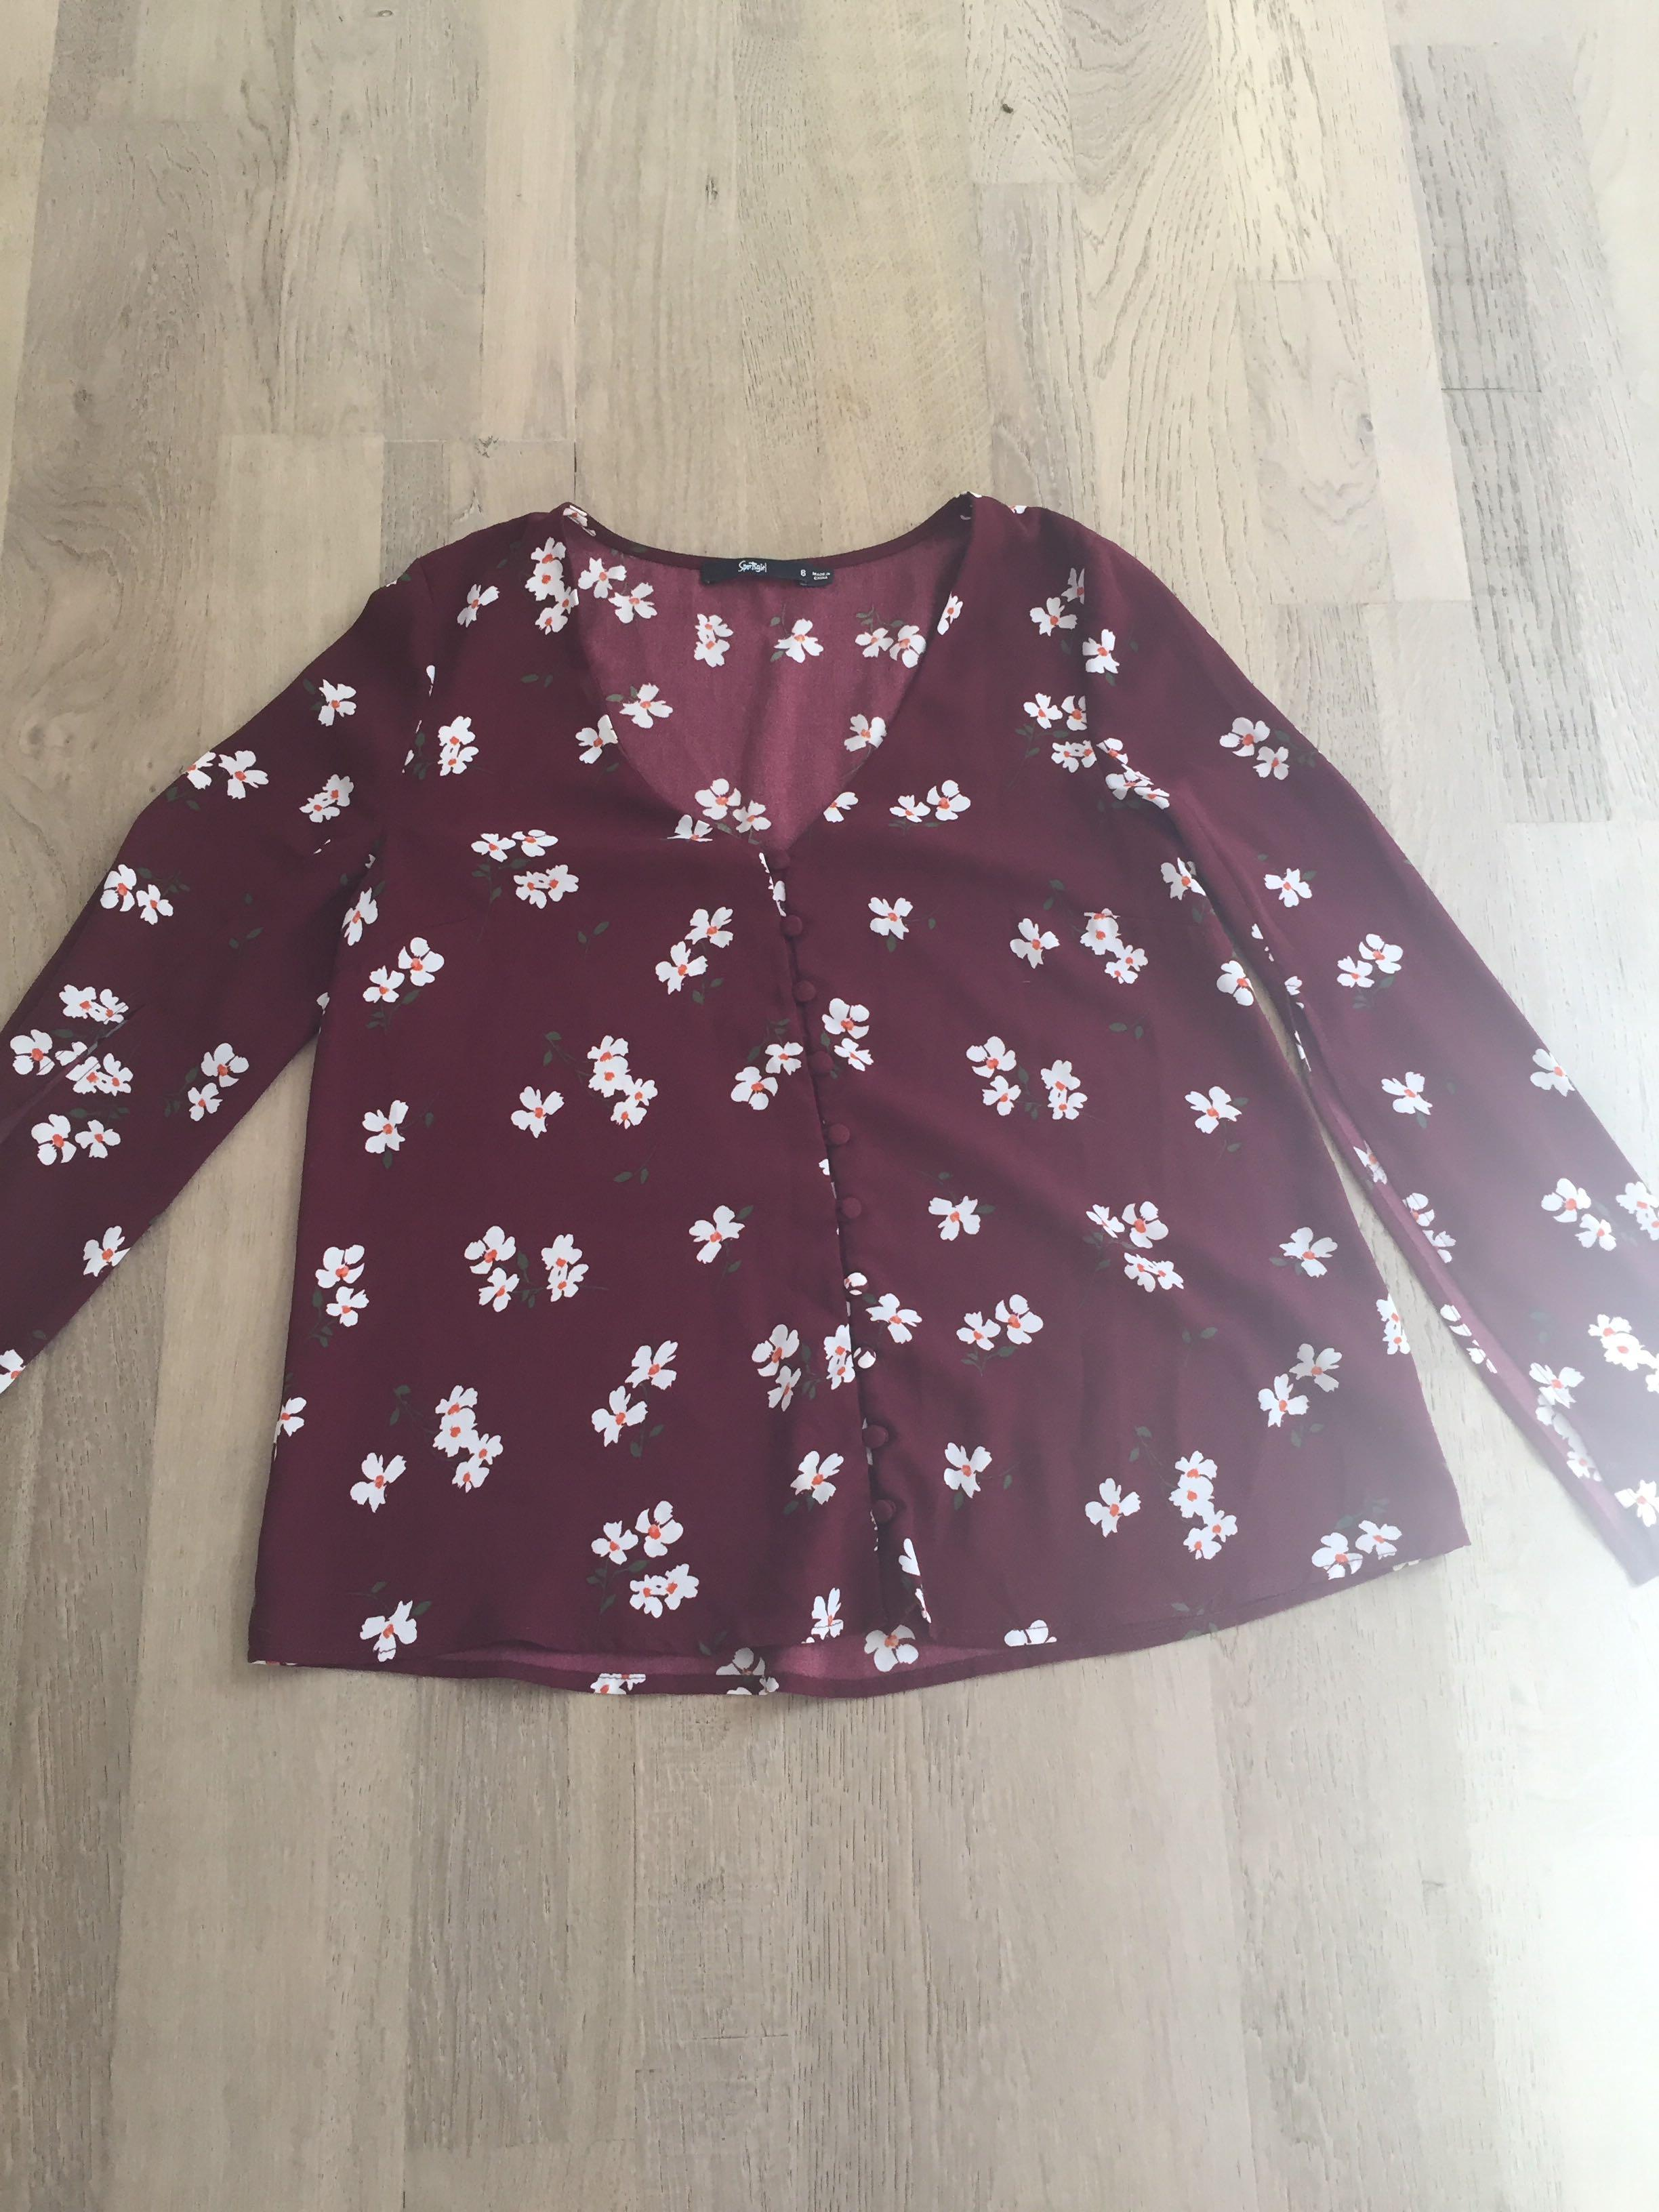 Sportsgirl size 6 floral top with split sleeves. Excellent condition